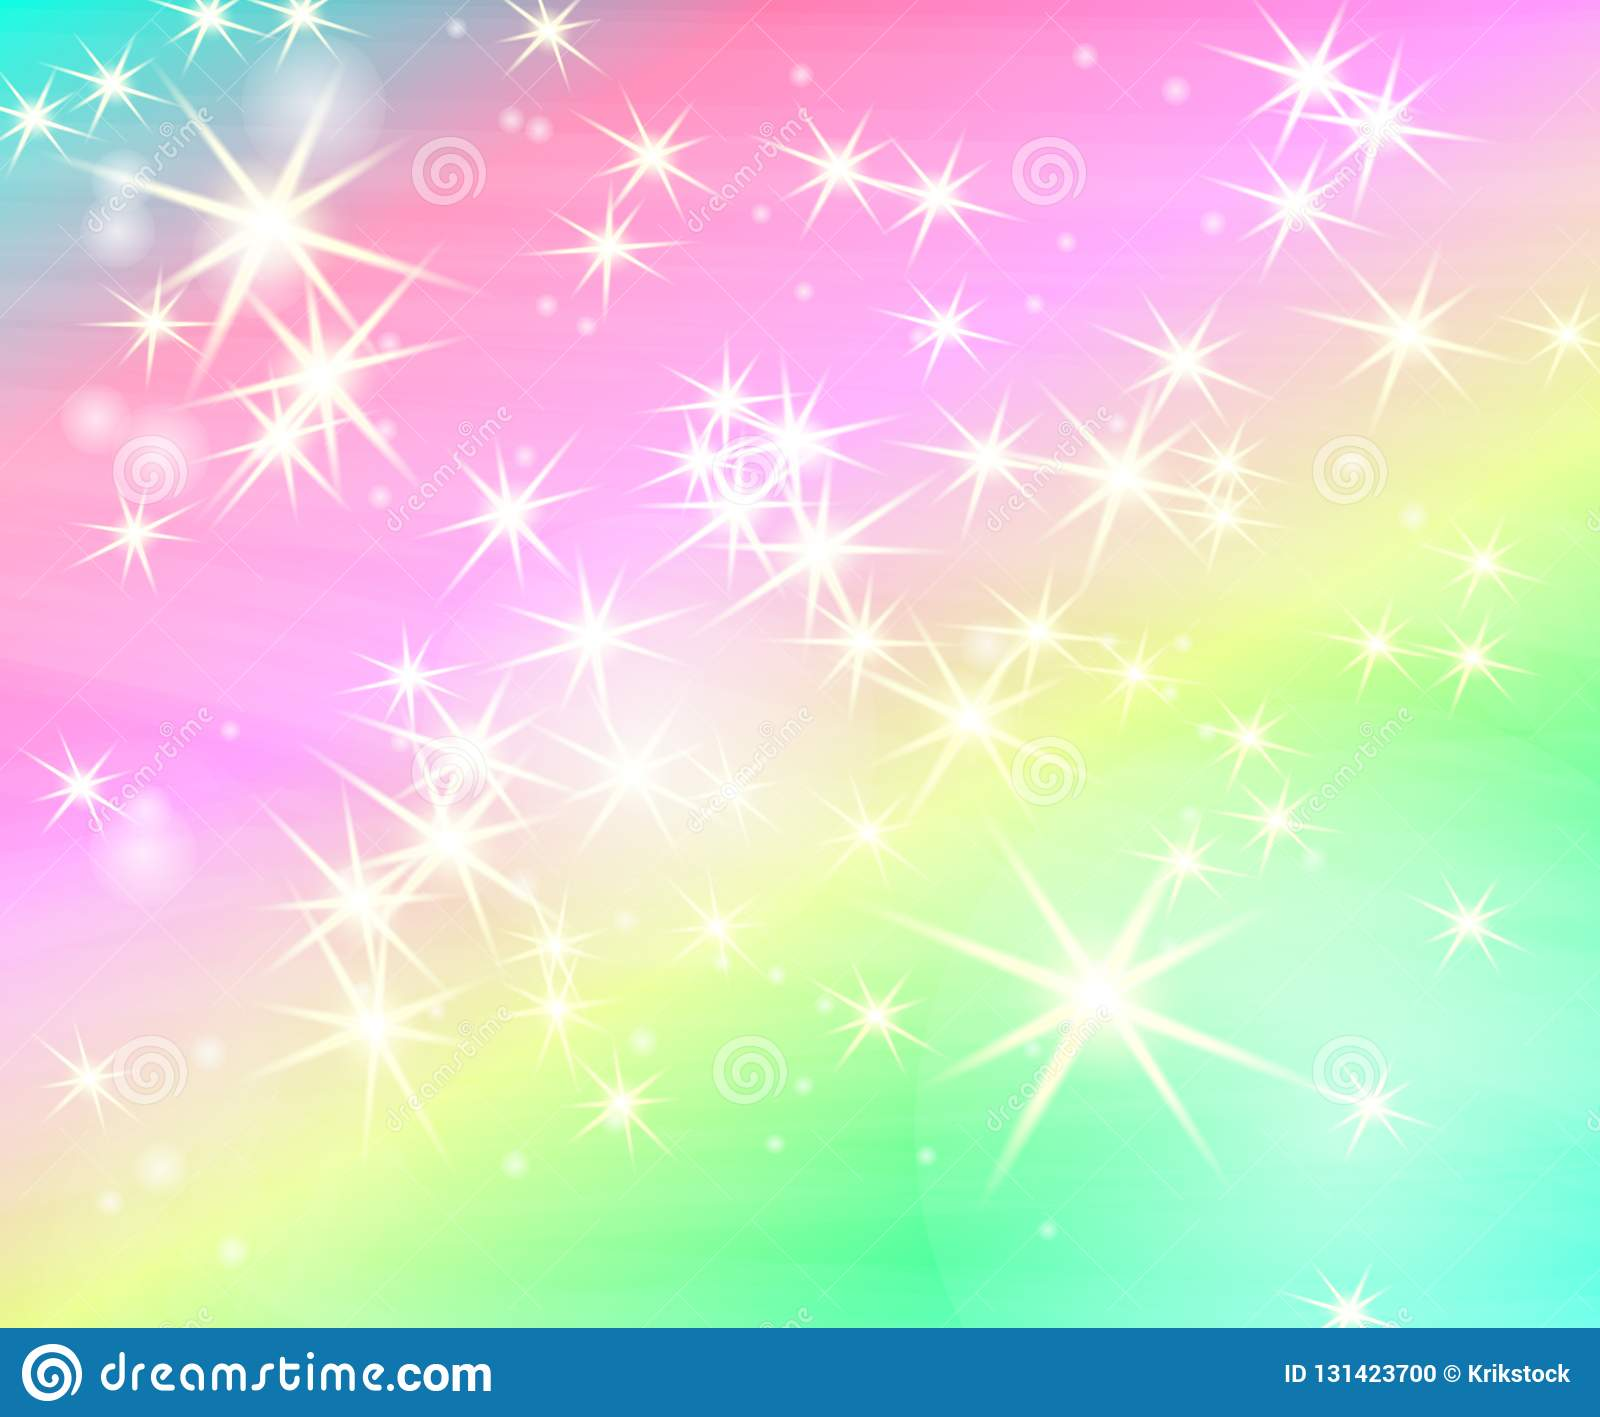 Glitter star rainbow background. Starry sky in pastel color. Bright mermaid pattern. Unicorn colorful stars backdrop.